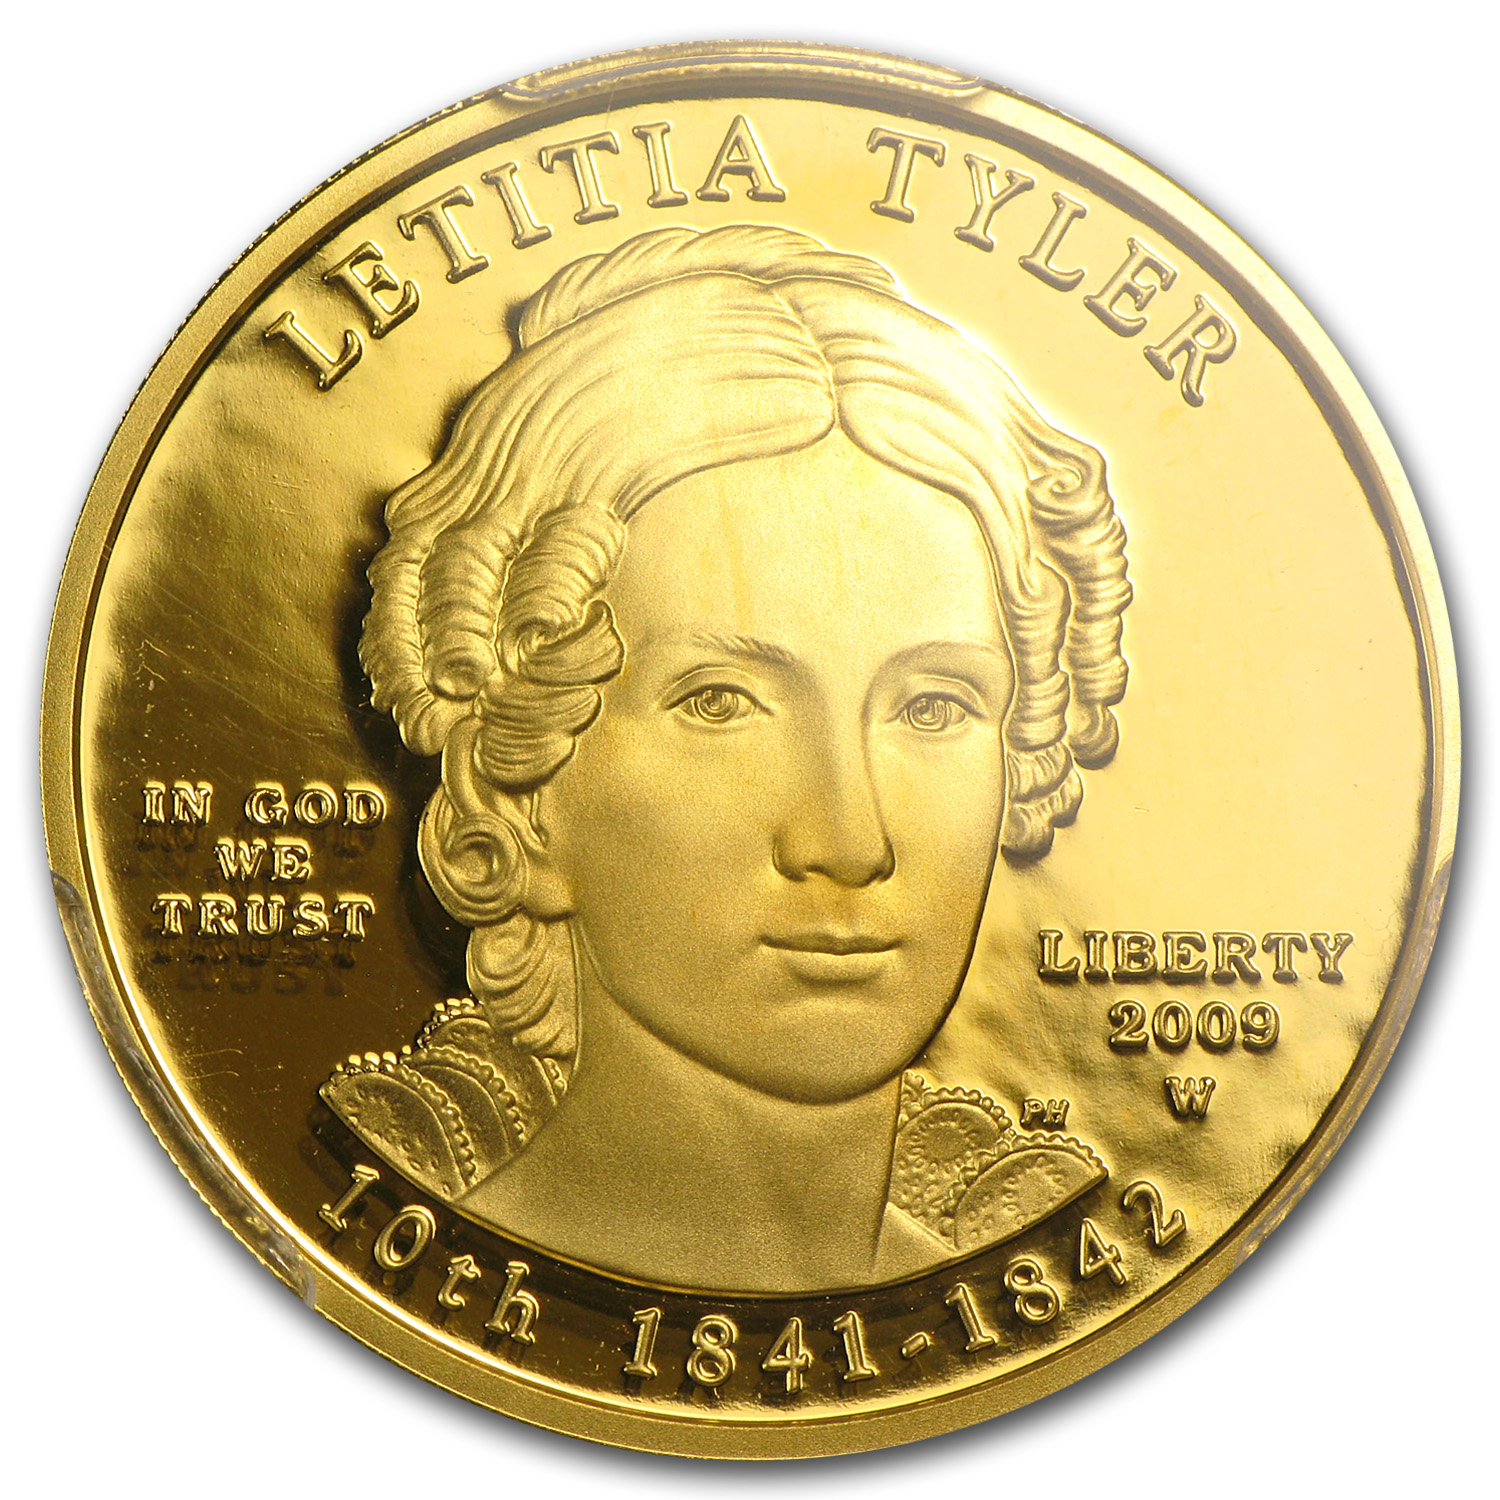 2009-W 1/2 oz Proof Gold Letitia Tyler PR-69 PCGS